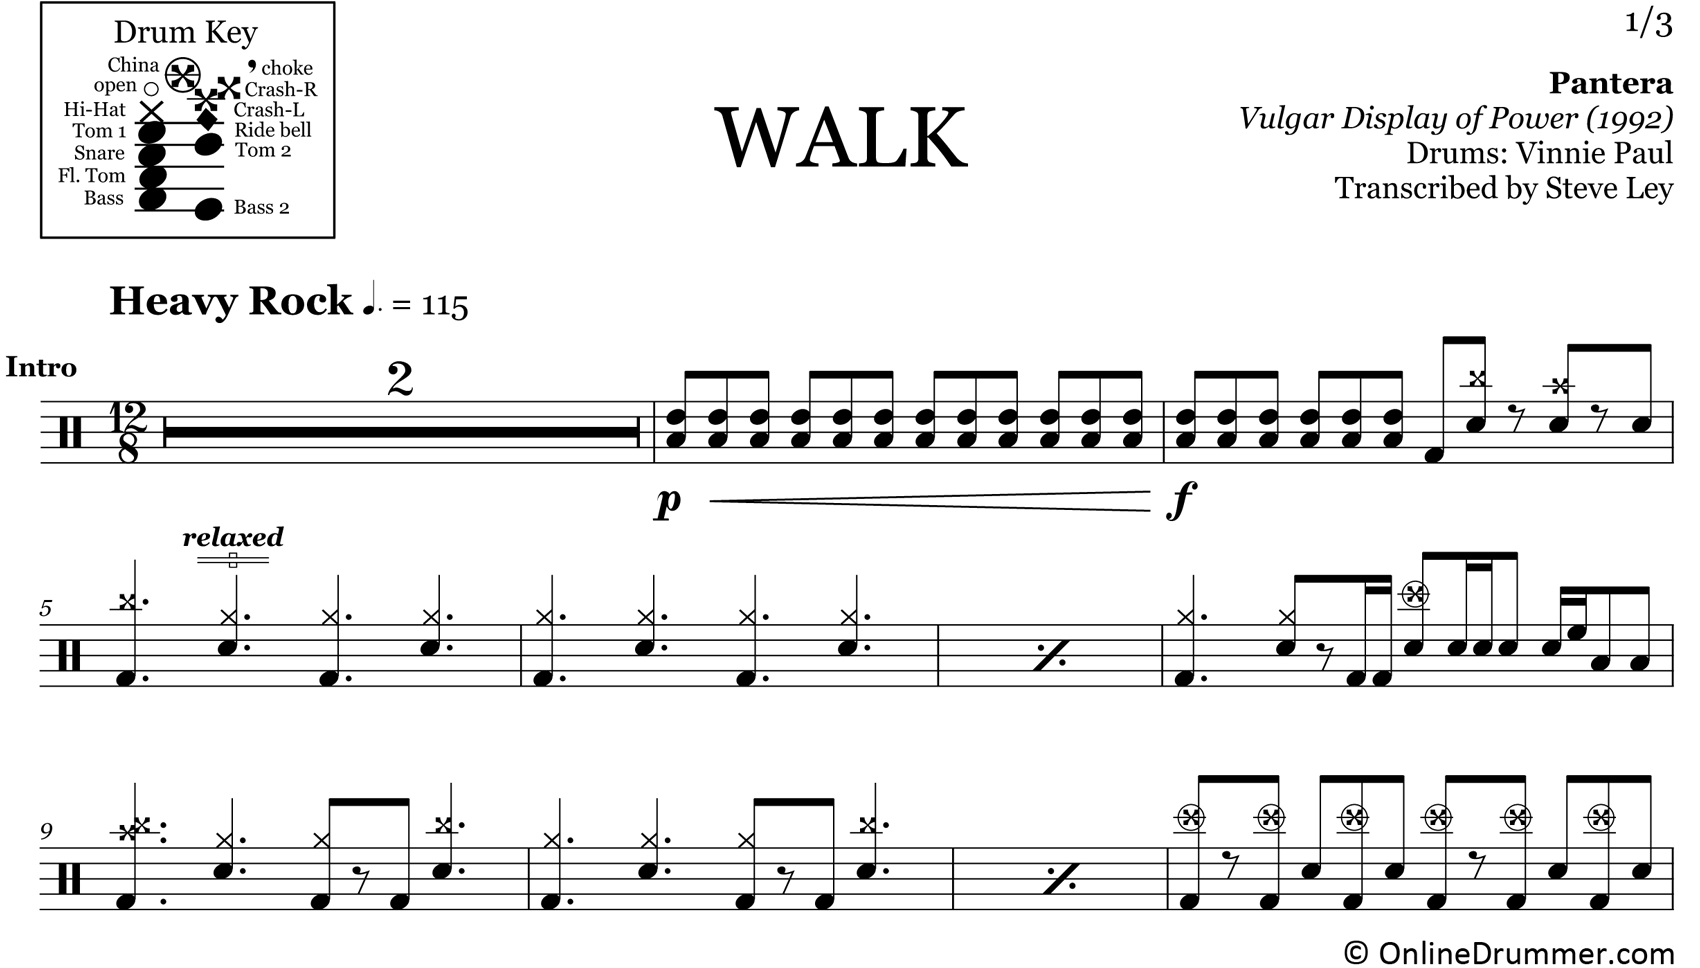 Walk - Pantera - Drum Sheet Music